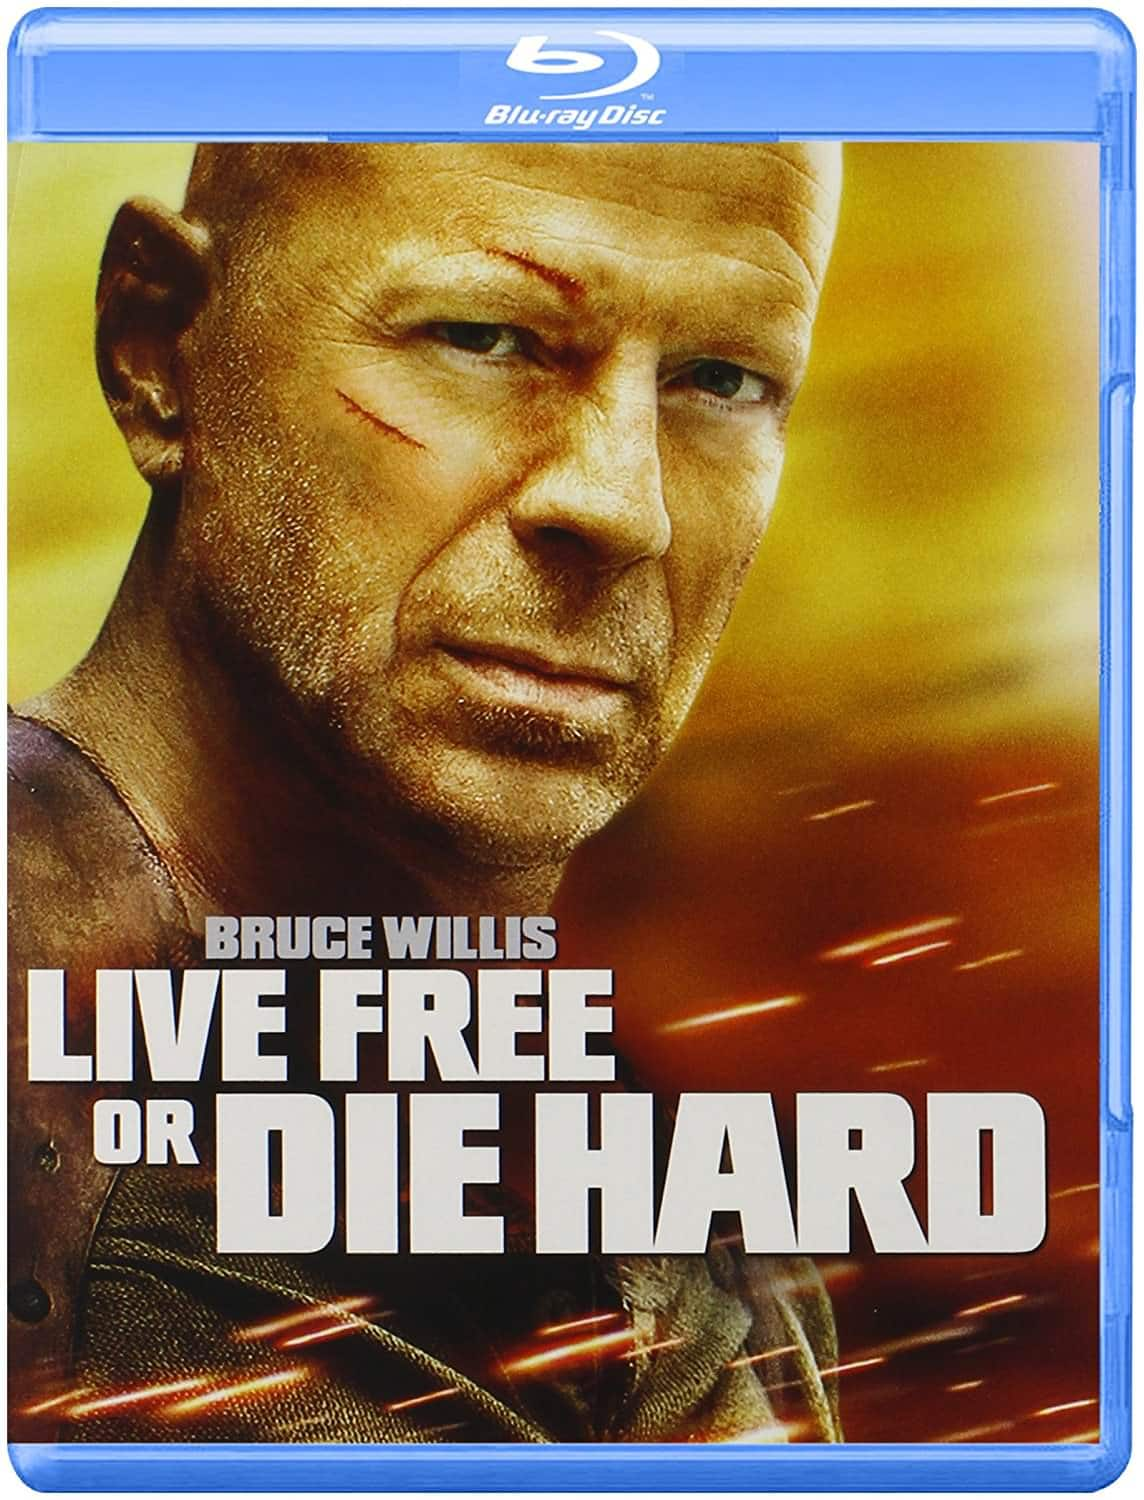 Amazon Blu-ray:  300 & 300: Rise of an Empire Double Feature or Live Free or Die Hard - $5.00